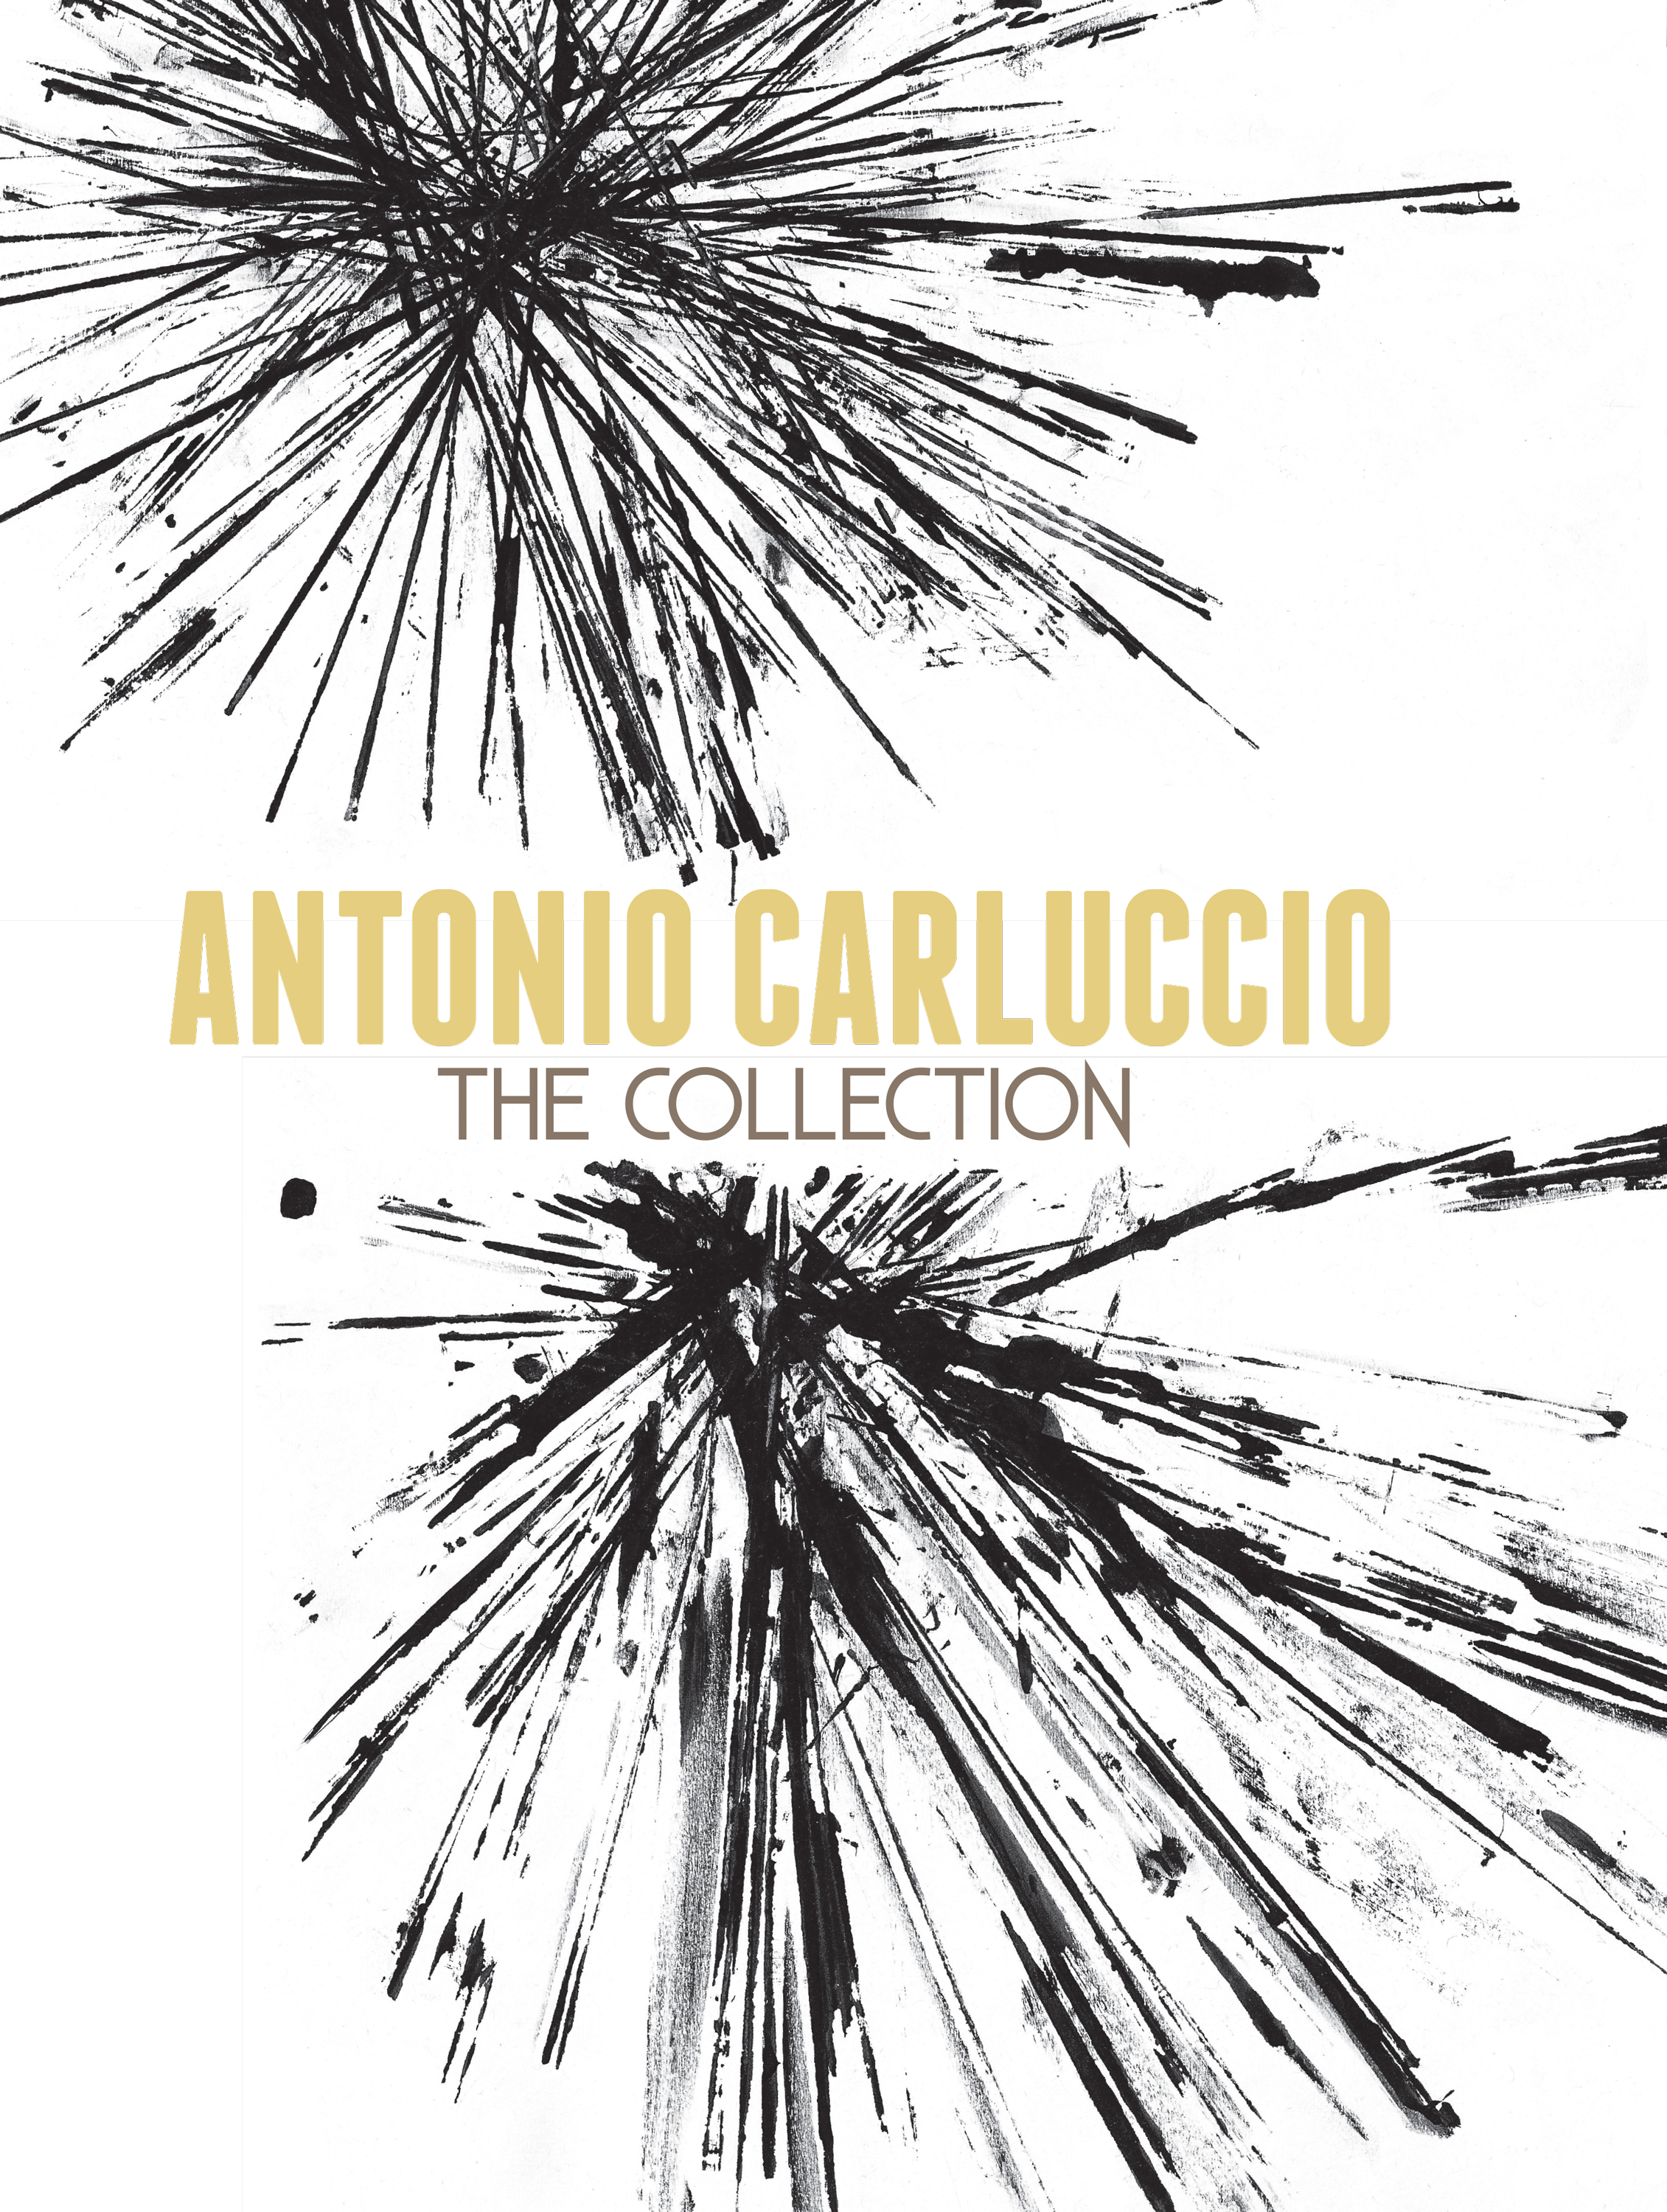 Antonio Carluccio The Collection